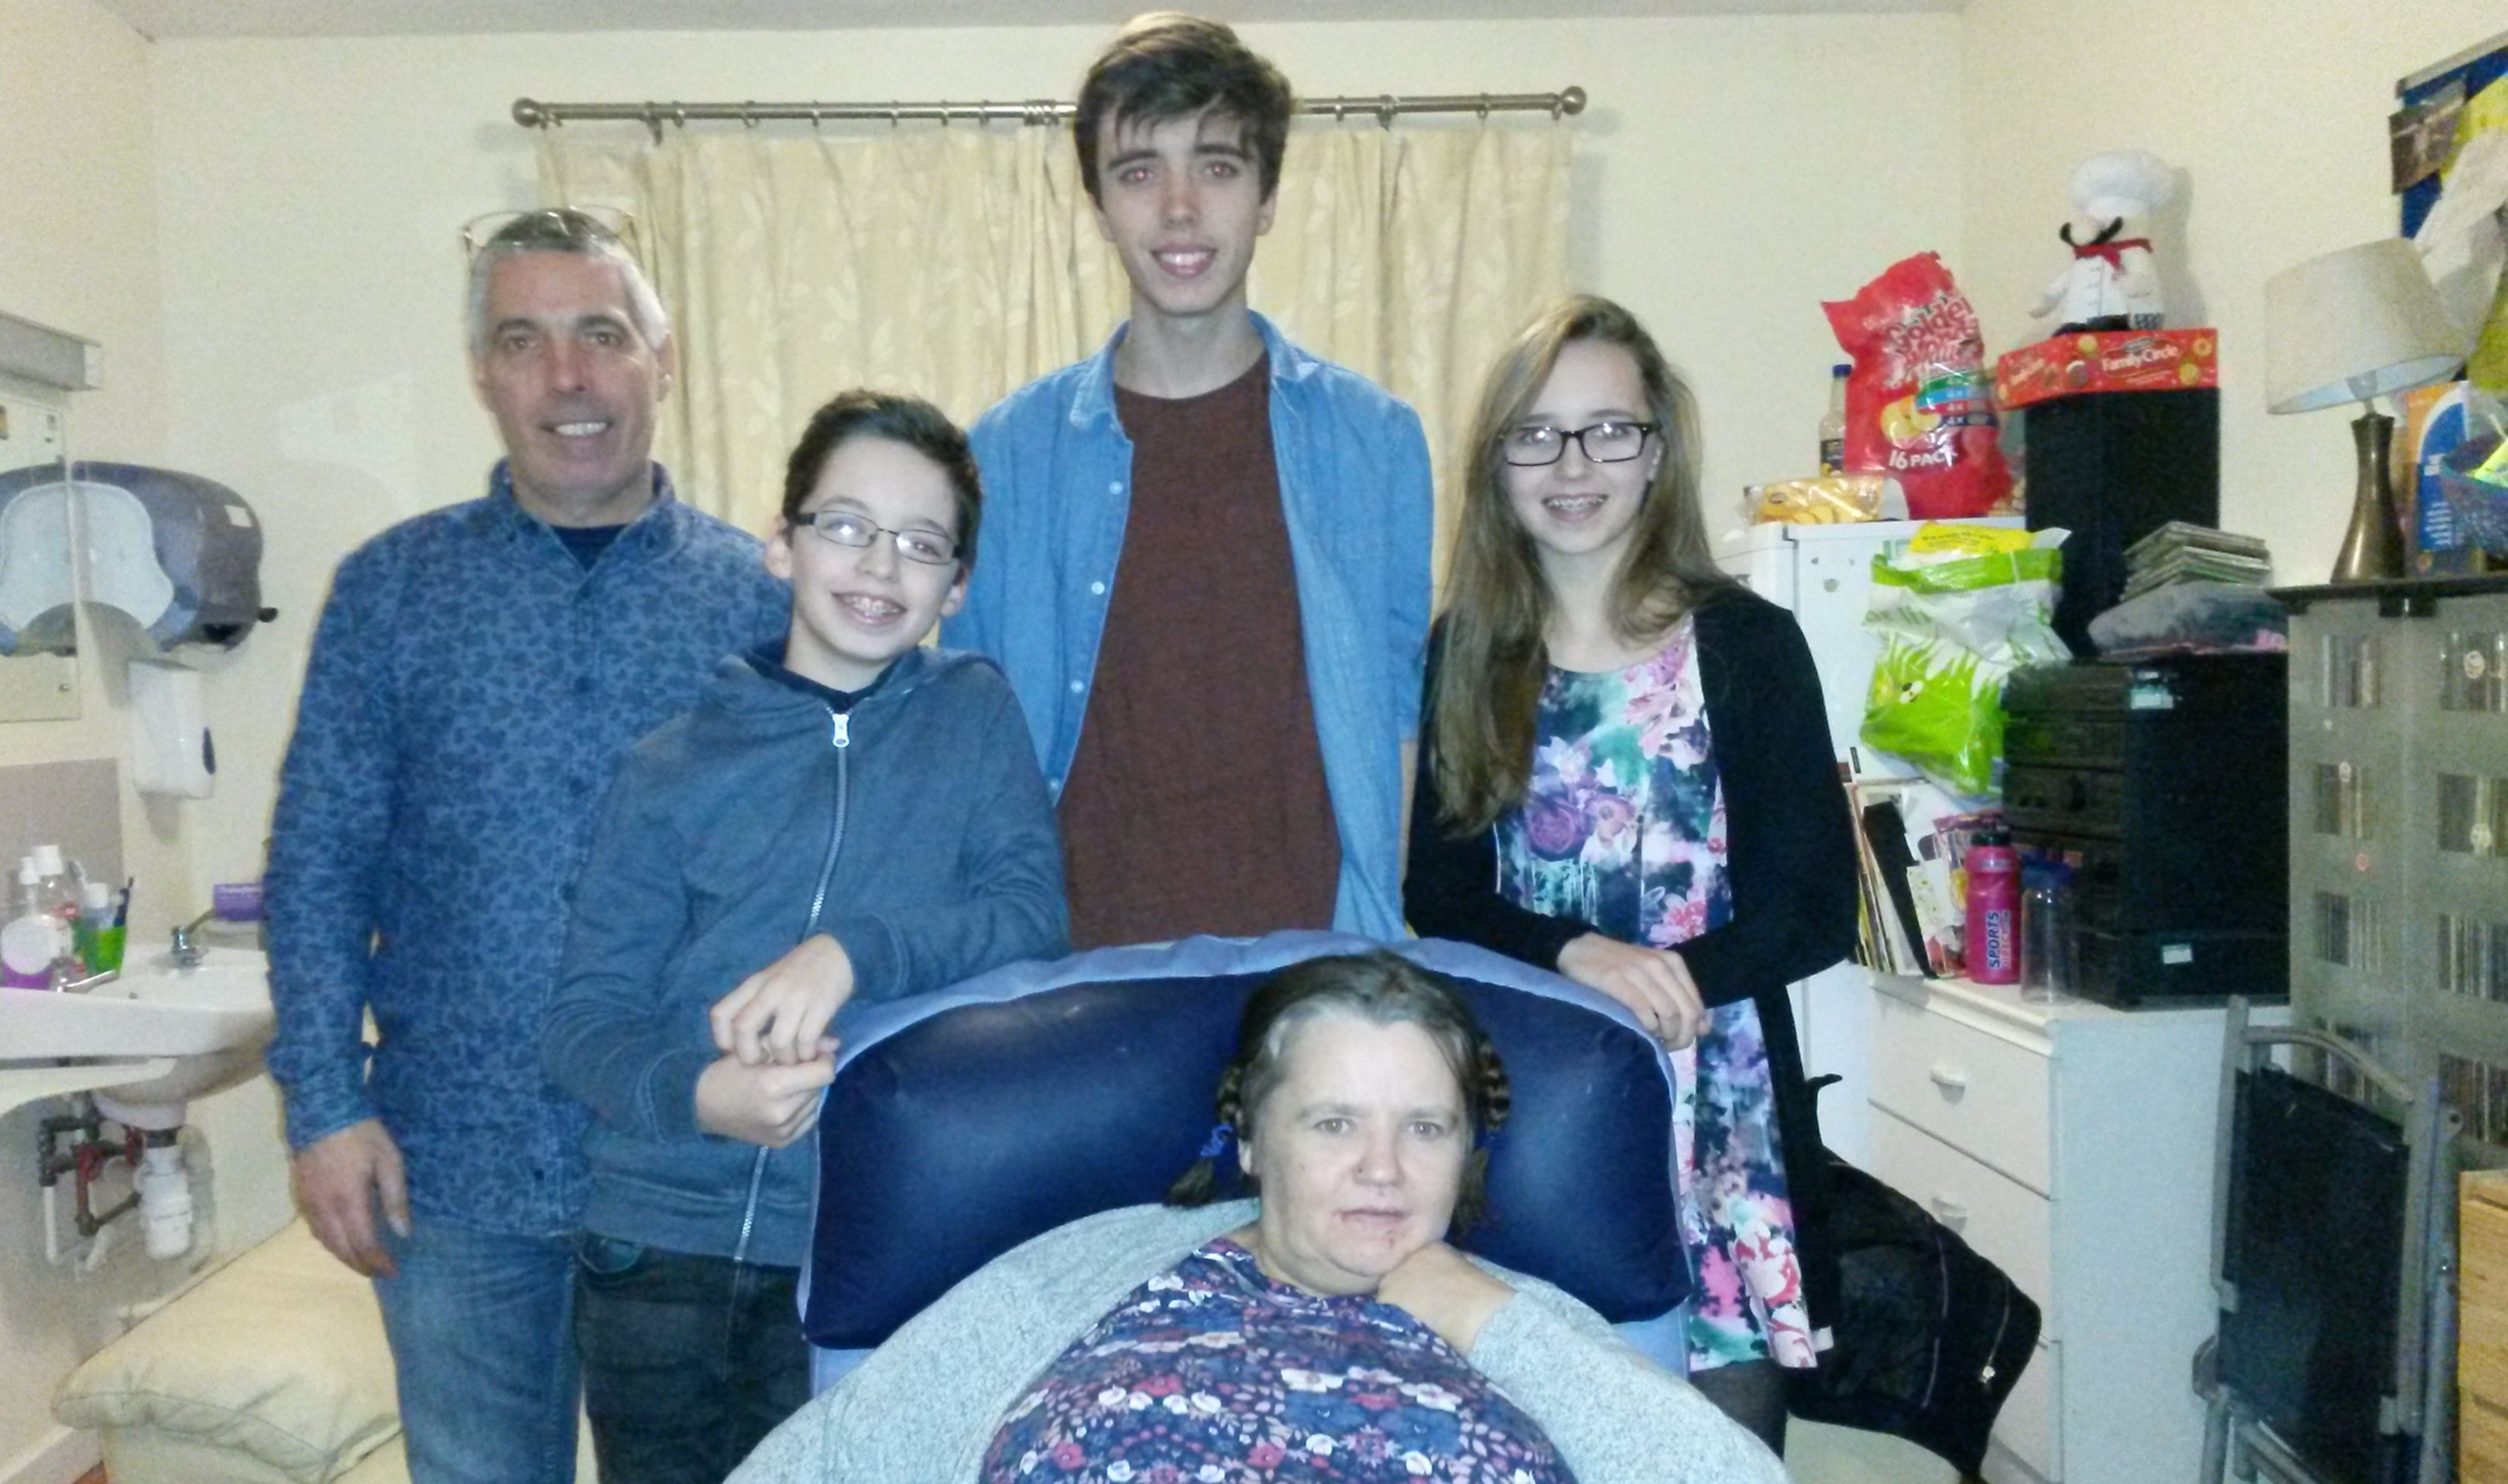 Cameron, centre back, with his family